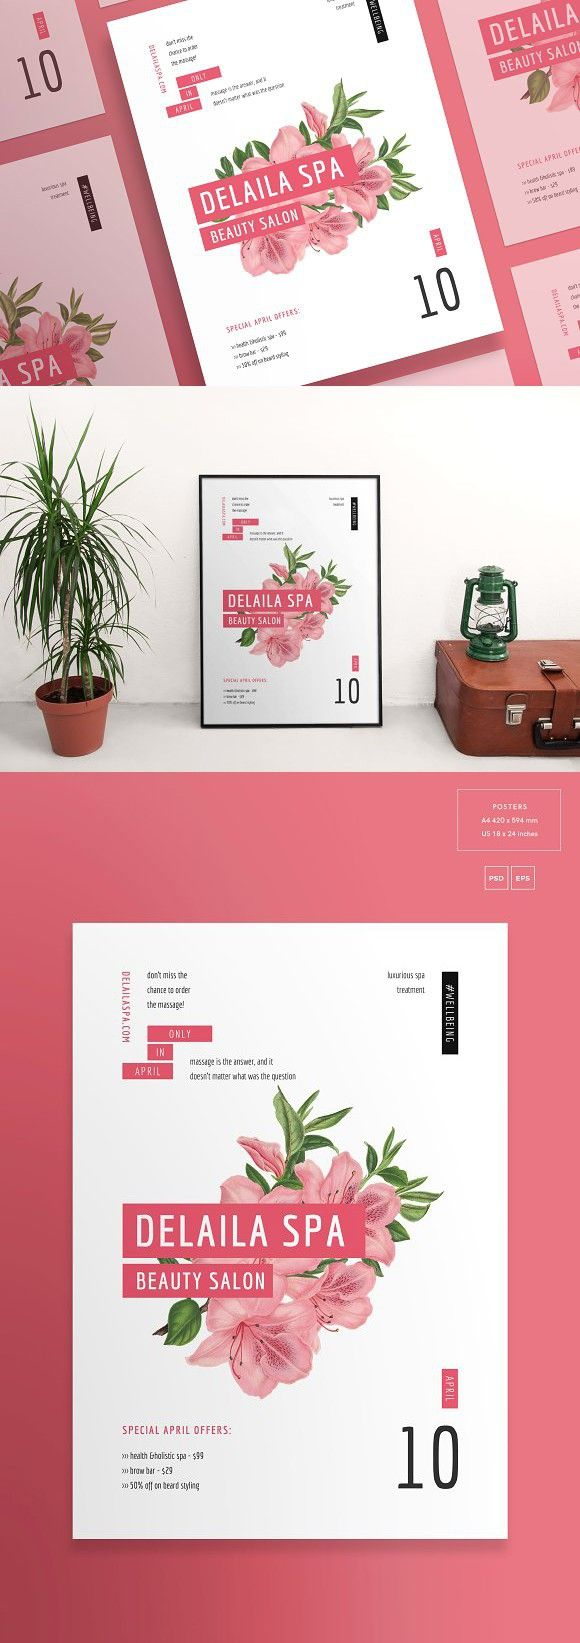 Posters | Delaila Spa. Flyer Templates